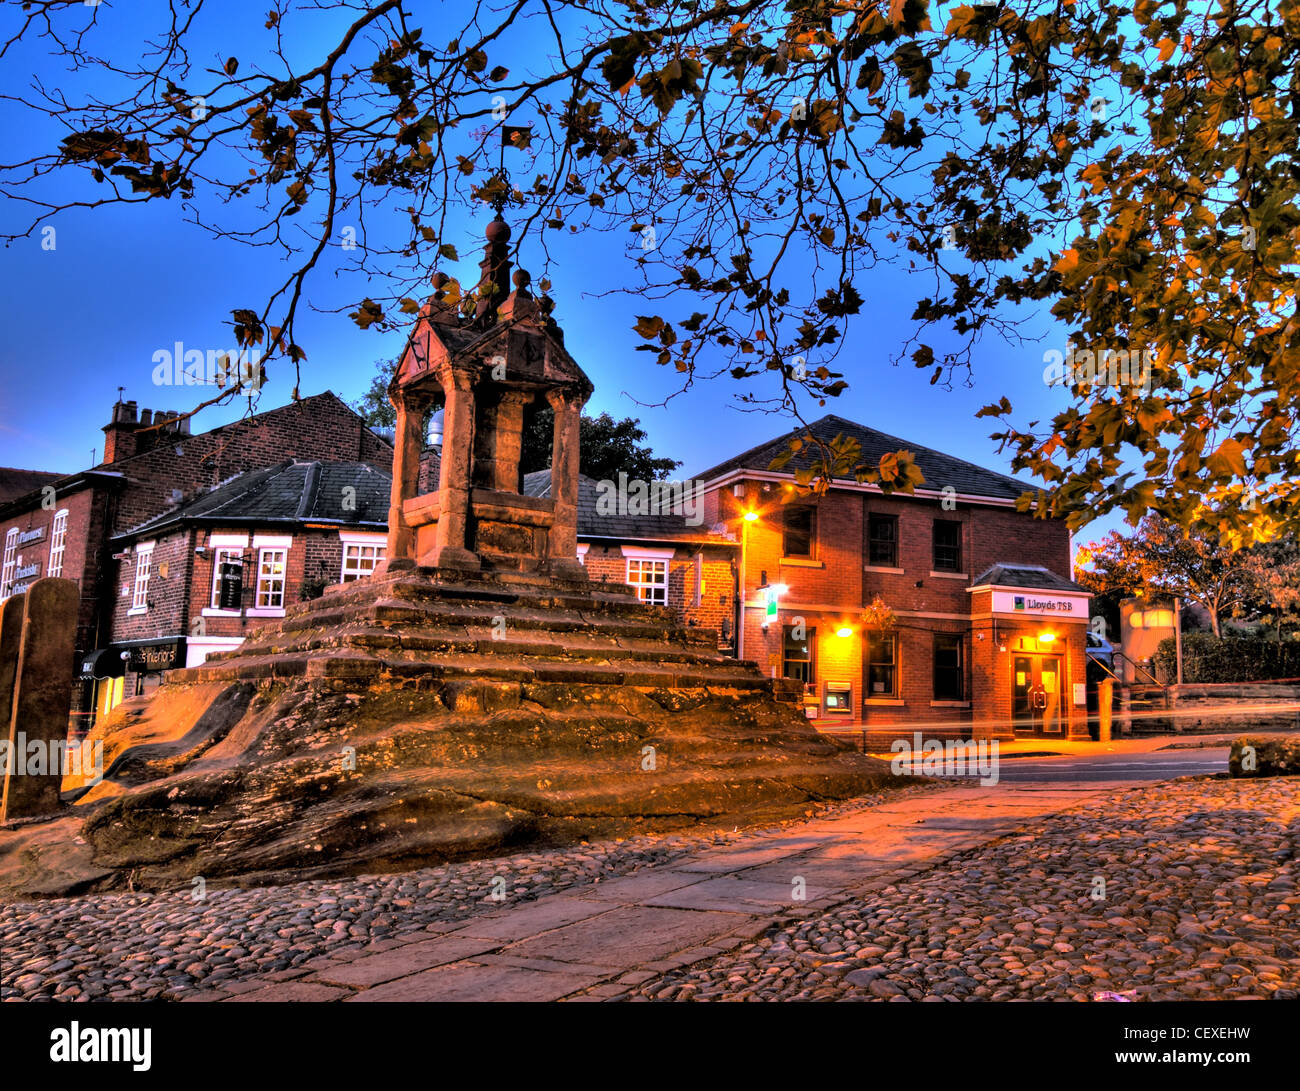 Autumn,Fall,at,Lymm,Cross,Lymmvillage,Cheshire,England,UK,WA13,0HP,WA130HP,autumn,cold,scenes,lights,gotonysmith,dusk,night,shot,blue,hour,bluehour,october,evening,LymmCross,scene,picturesque,Lloyds,bank,branch,sub-branch,sub,gotonysmith,Buy Pictures of,Buy Images Of,Lymm Cross is in the village of Lymm,Cheshire,England.,It,has,been,designated,by,English,Heritage,as,a,Grade,I,listed,building.,charming,villages,tourist,tourism,The,cross,dates,from,the,early,to,the,middle,17th,century,and,it,was,restored,in,1897.,It,is,constructed,of,sandstone,and,stands,on,an,artificially,stepped,natural,outcrop,of,red,sandstone.,Its,shaft,stands,in,a,square,pavilion,of,red,sandstone,with,square,corner,pillars.,It,has,a,stone,roof,with,a,pedimented,gable,to,each,face,and,ball,finials.,Above,the,cross,is,an,extension,which,carries,a,stone,ball,and,an,ornate,weather,vane.,On,the,east,south,and,west,gables,are,bronze,sundials,of,1897,carrying,the,inscriptions,and,We are a Shadow,Save Time,Think of the Last